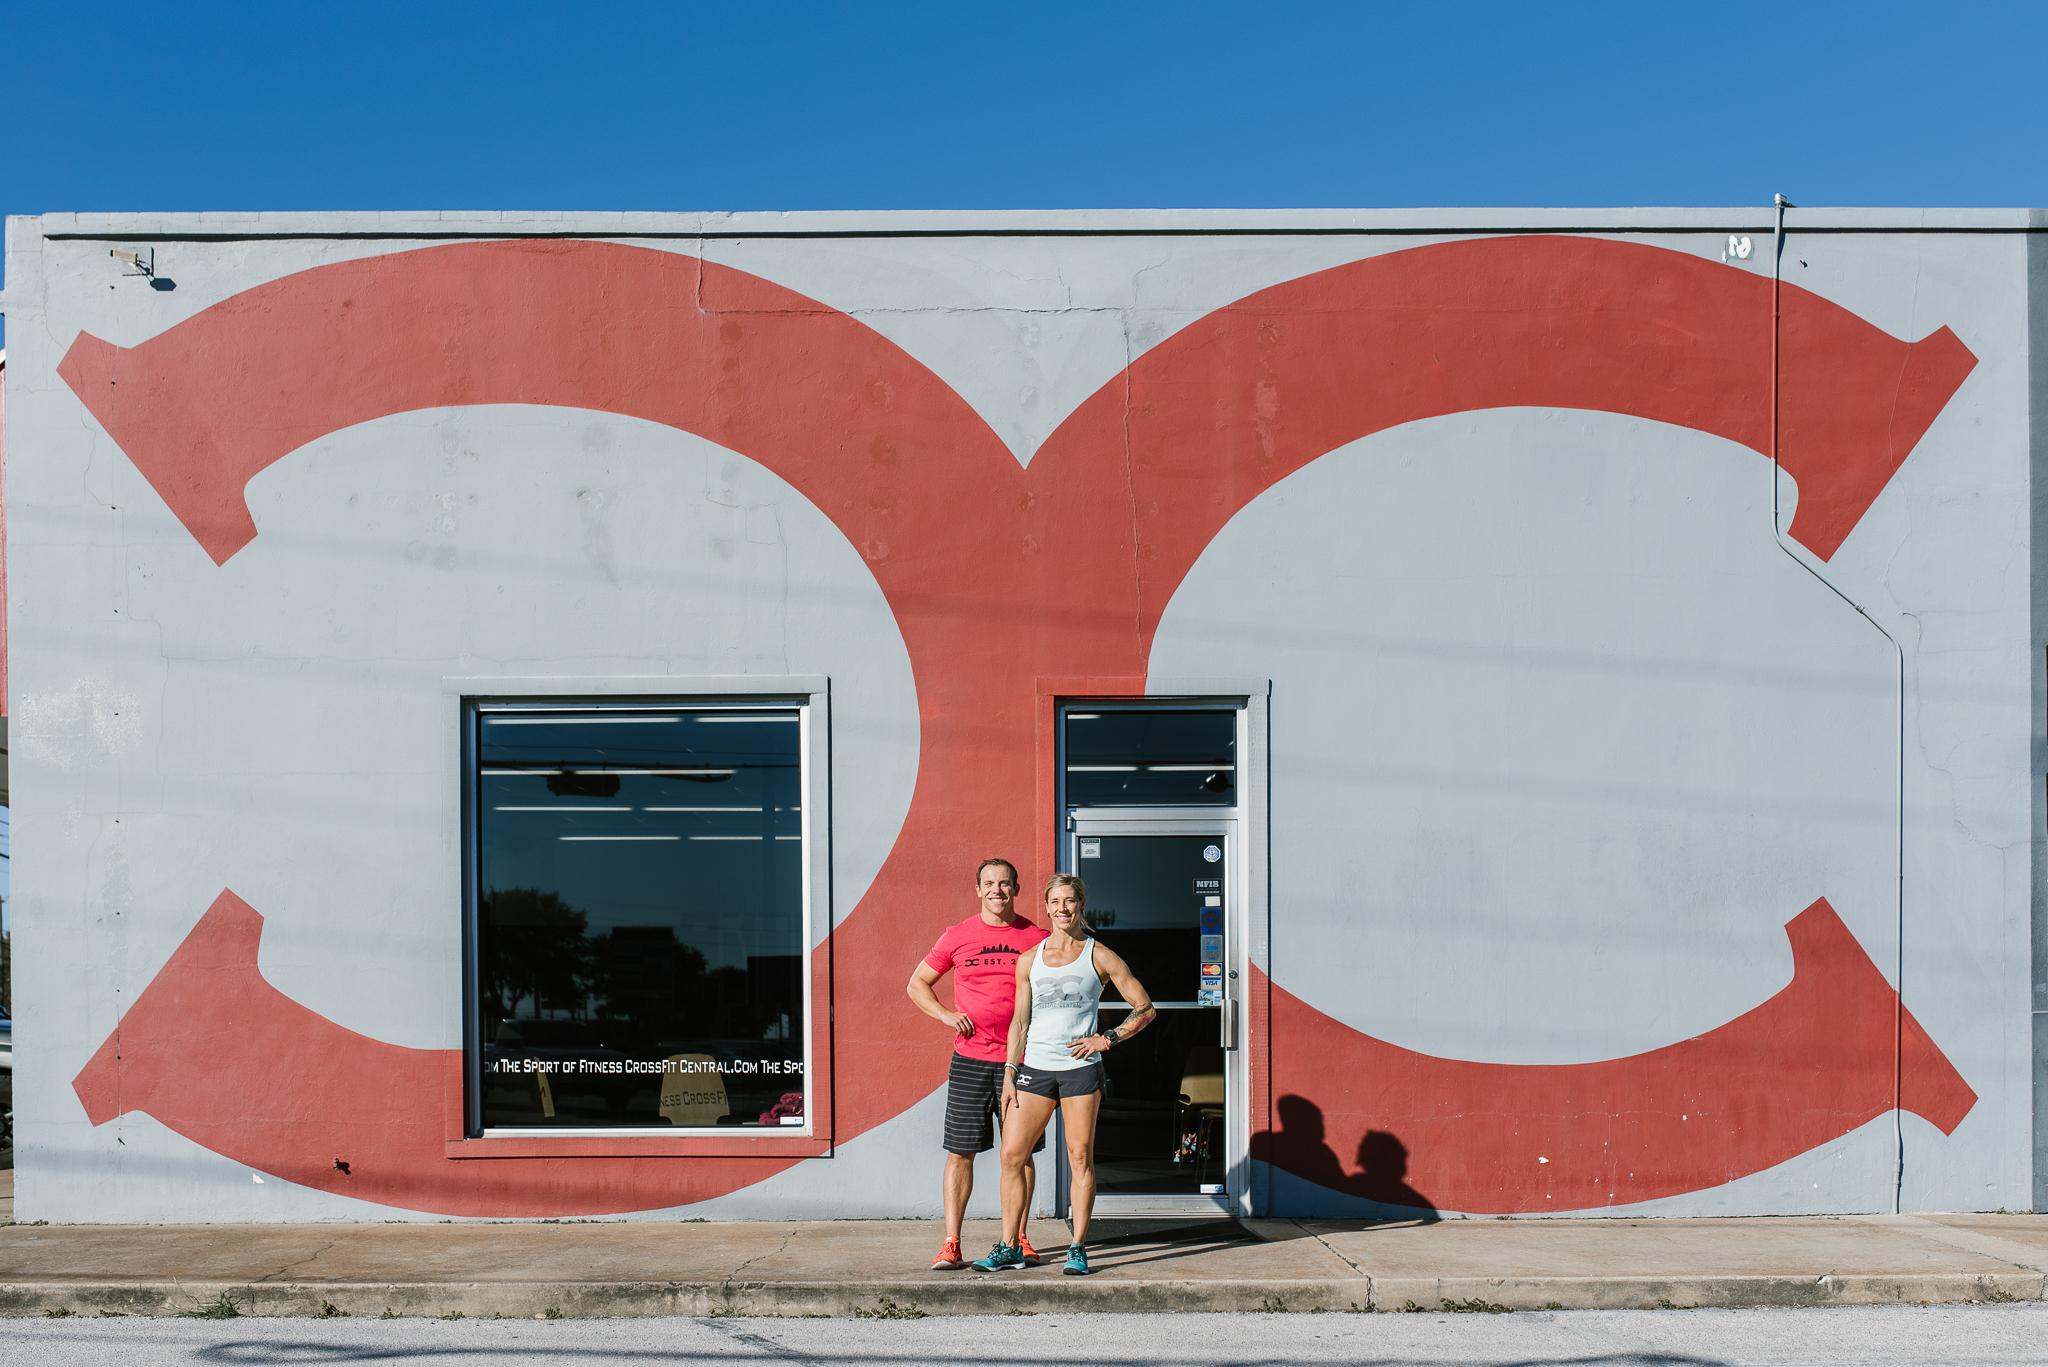 Austin and Round Rock Commercial Photography - Emily Ingalls Photography - Sports and Fitness Photography - CrossFit Central_CrossFit and Weight lifting Photography-5.jpg